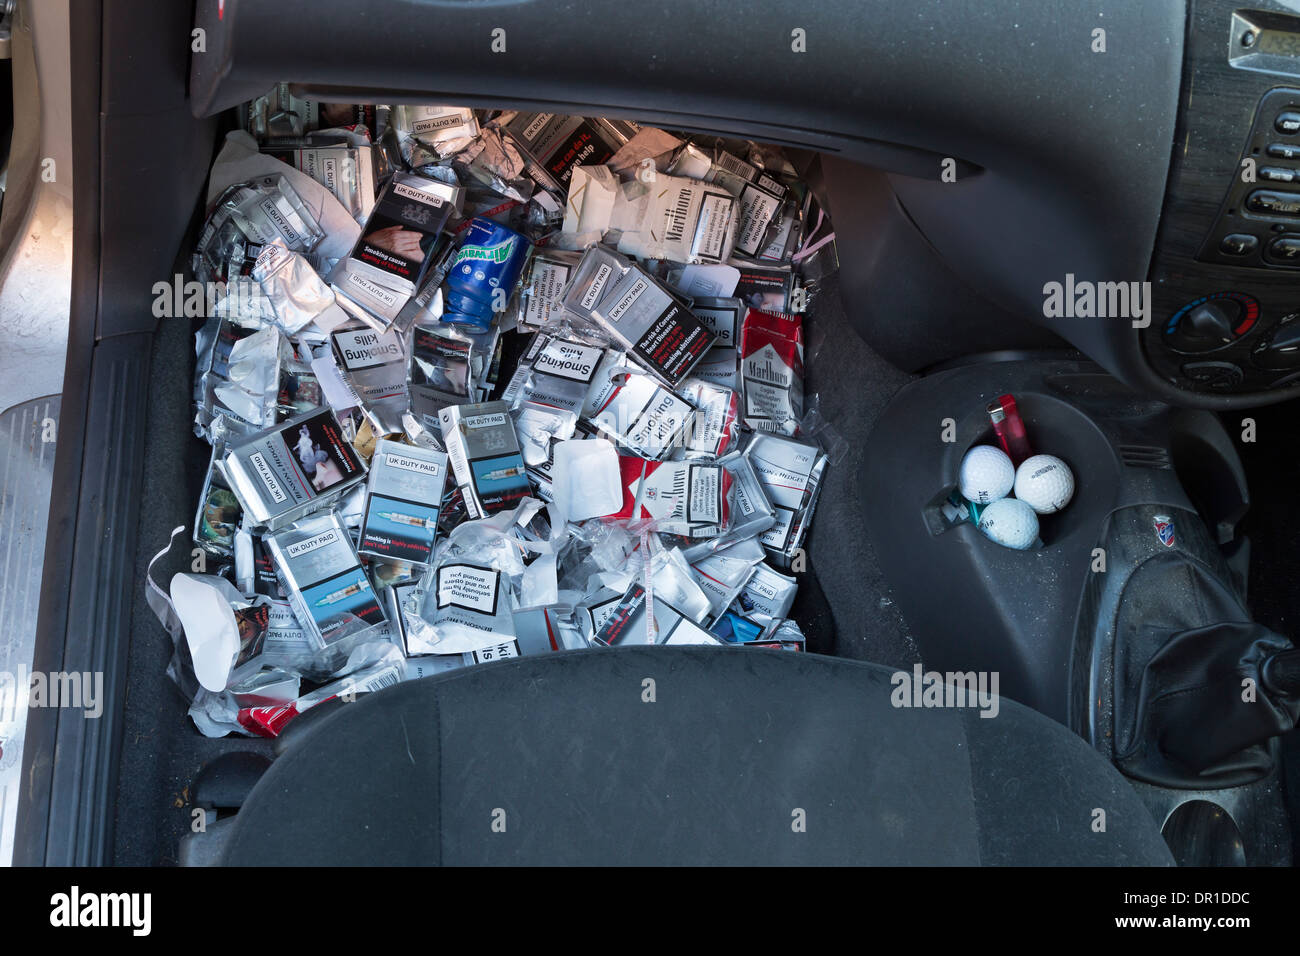 MANY DISCARDED CIGARETTE PACKETS THROWN ON THE FLOOR OF A FORD FOCUS CAR, BY A SMOKER. - Stock Image